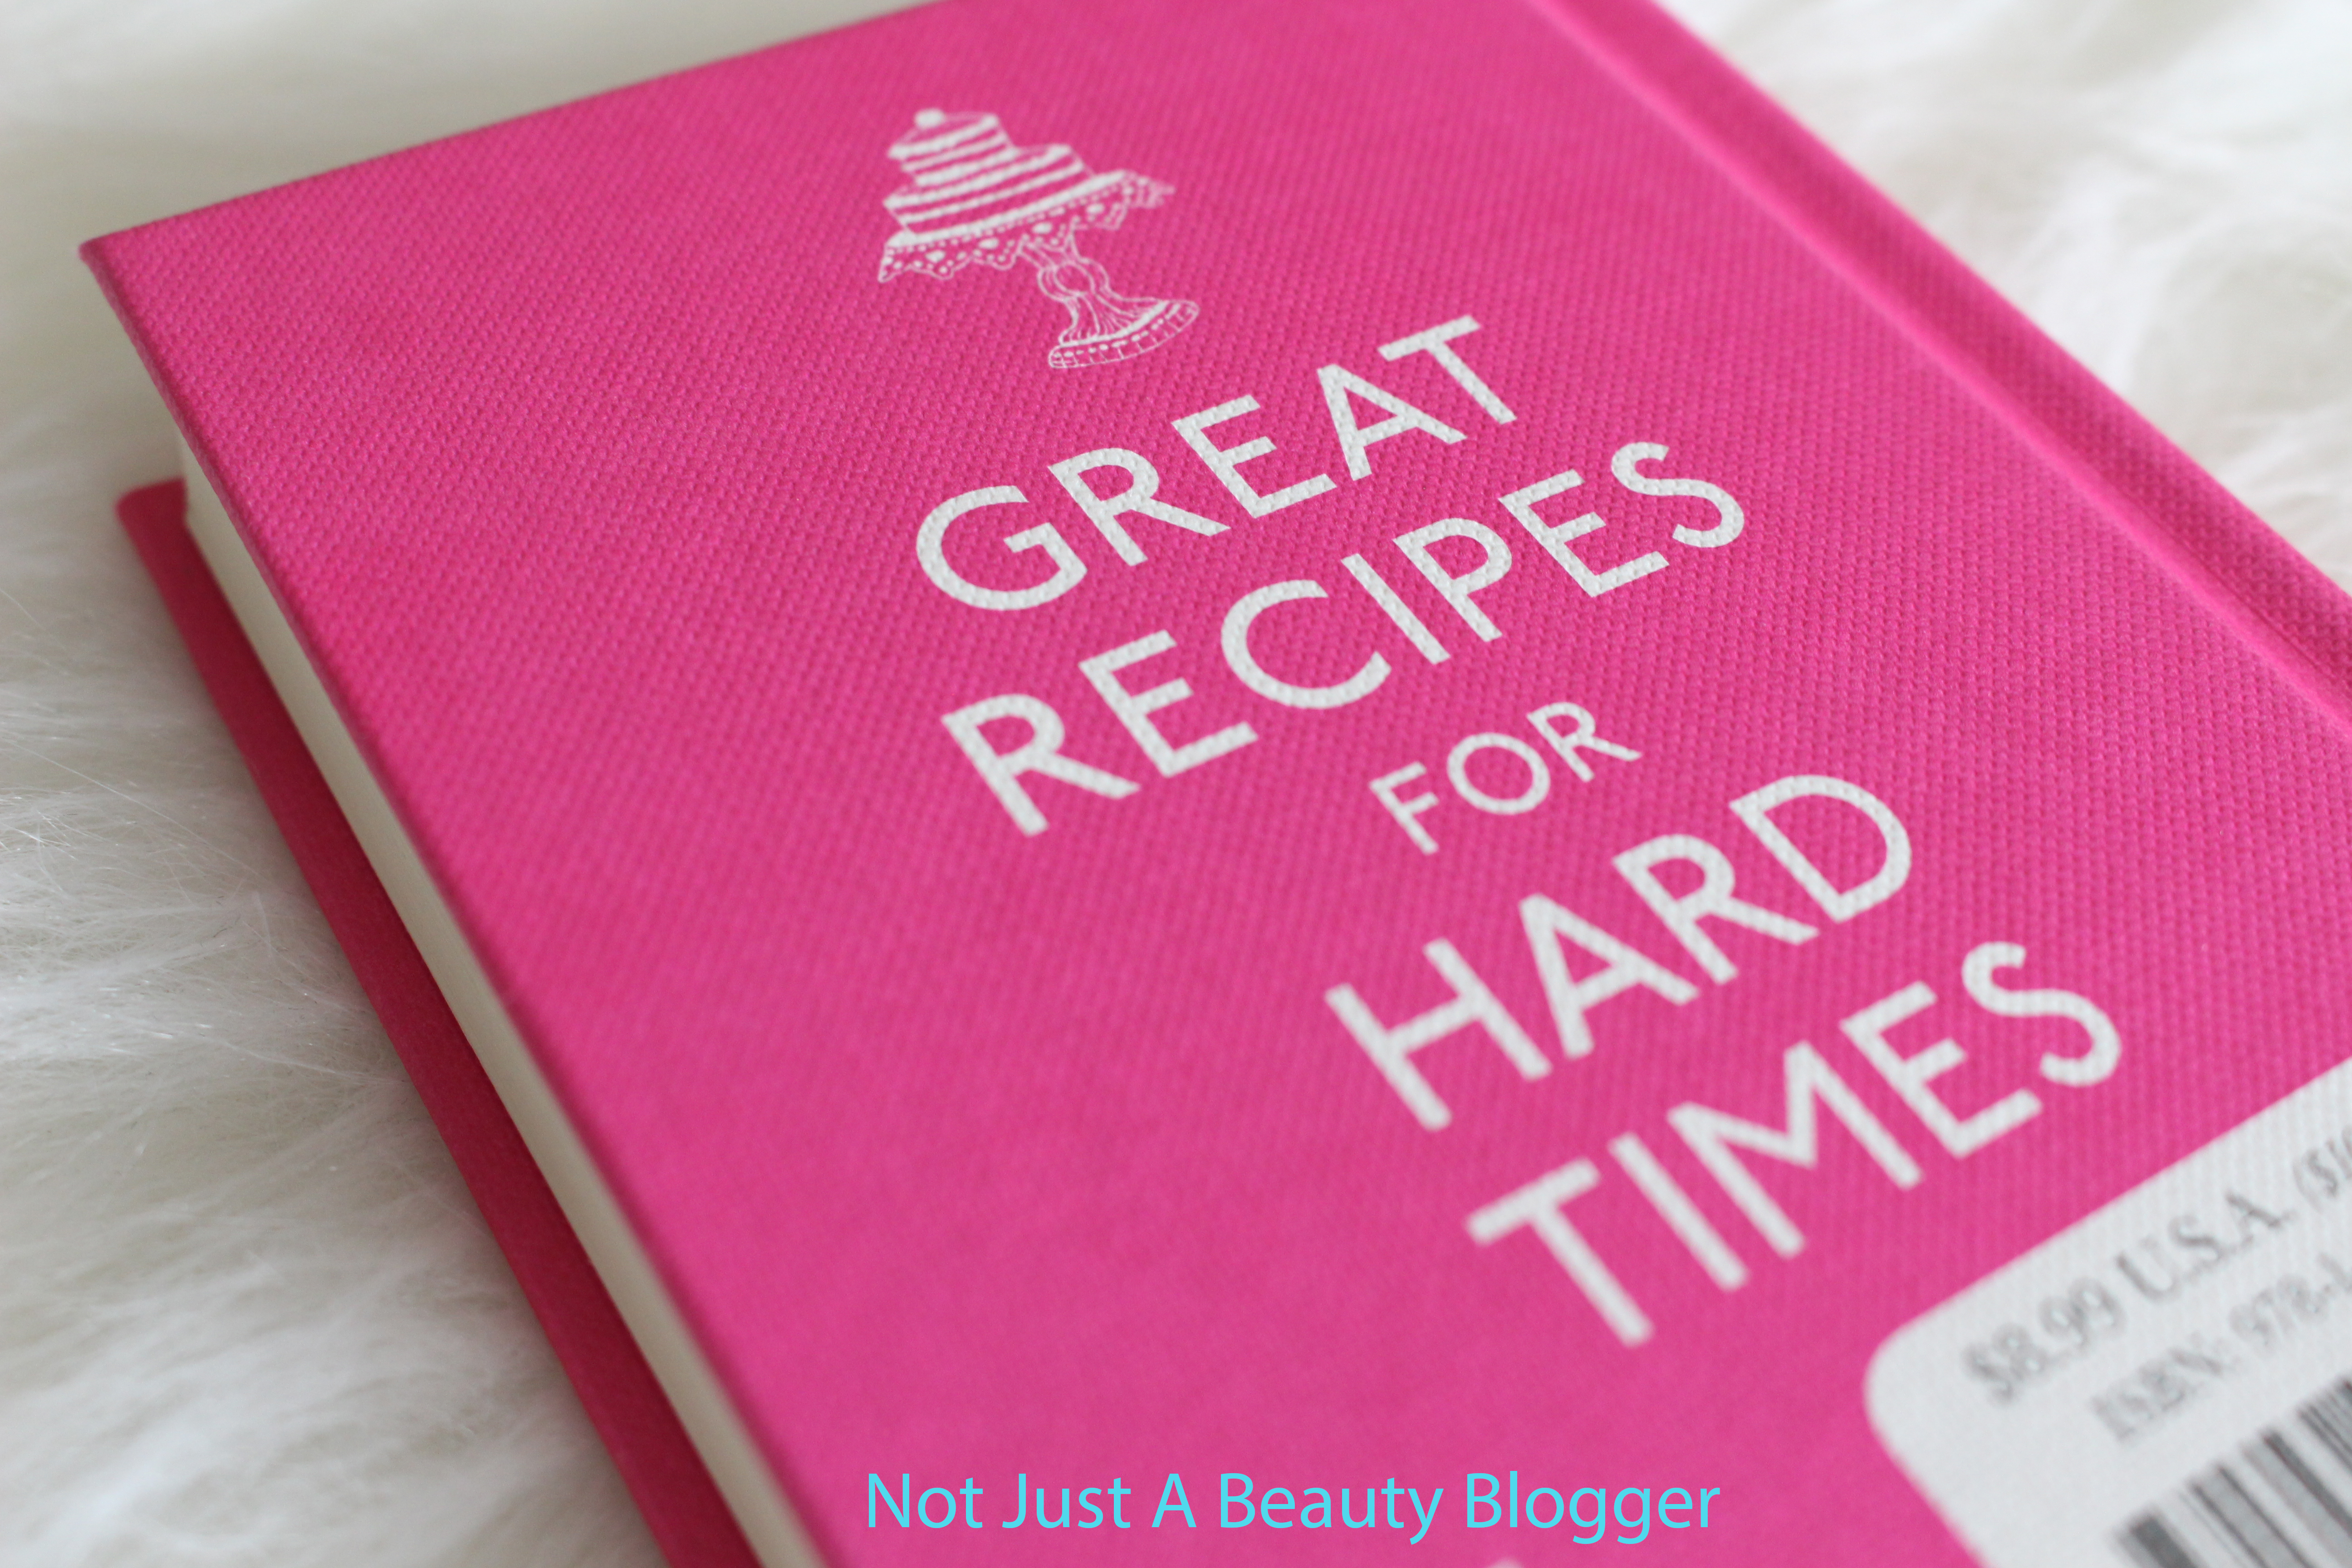 Two Week Wait Archives - Not Just A Beauty Blogger